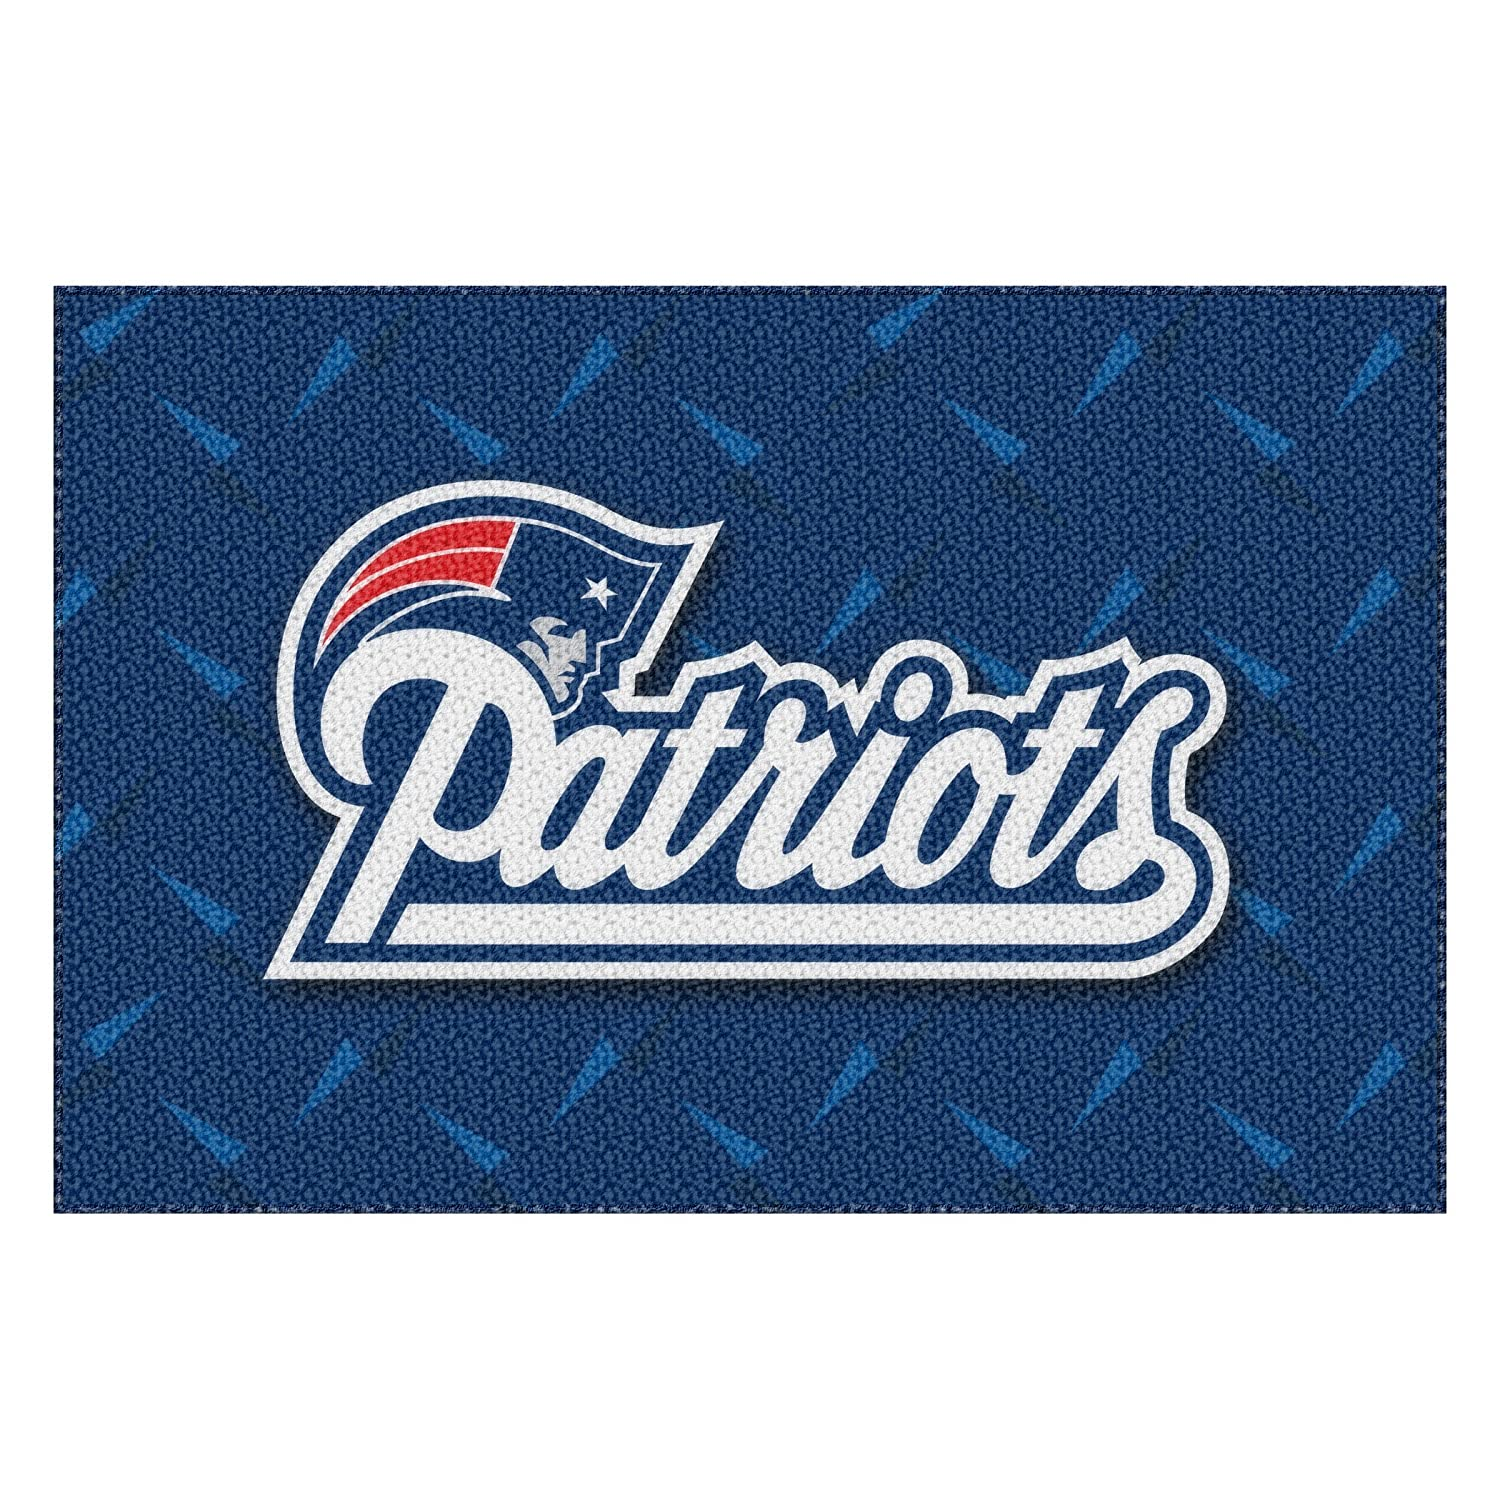 The Northwest Company Officially Licensed Rug 1NFL333000076RET